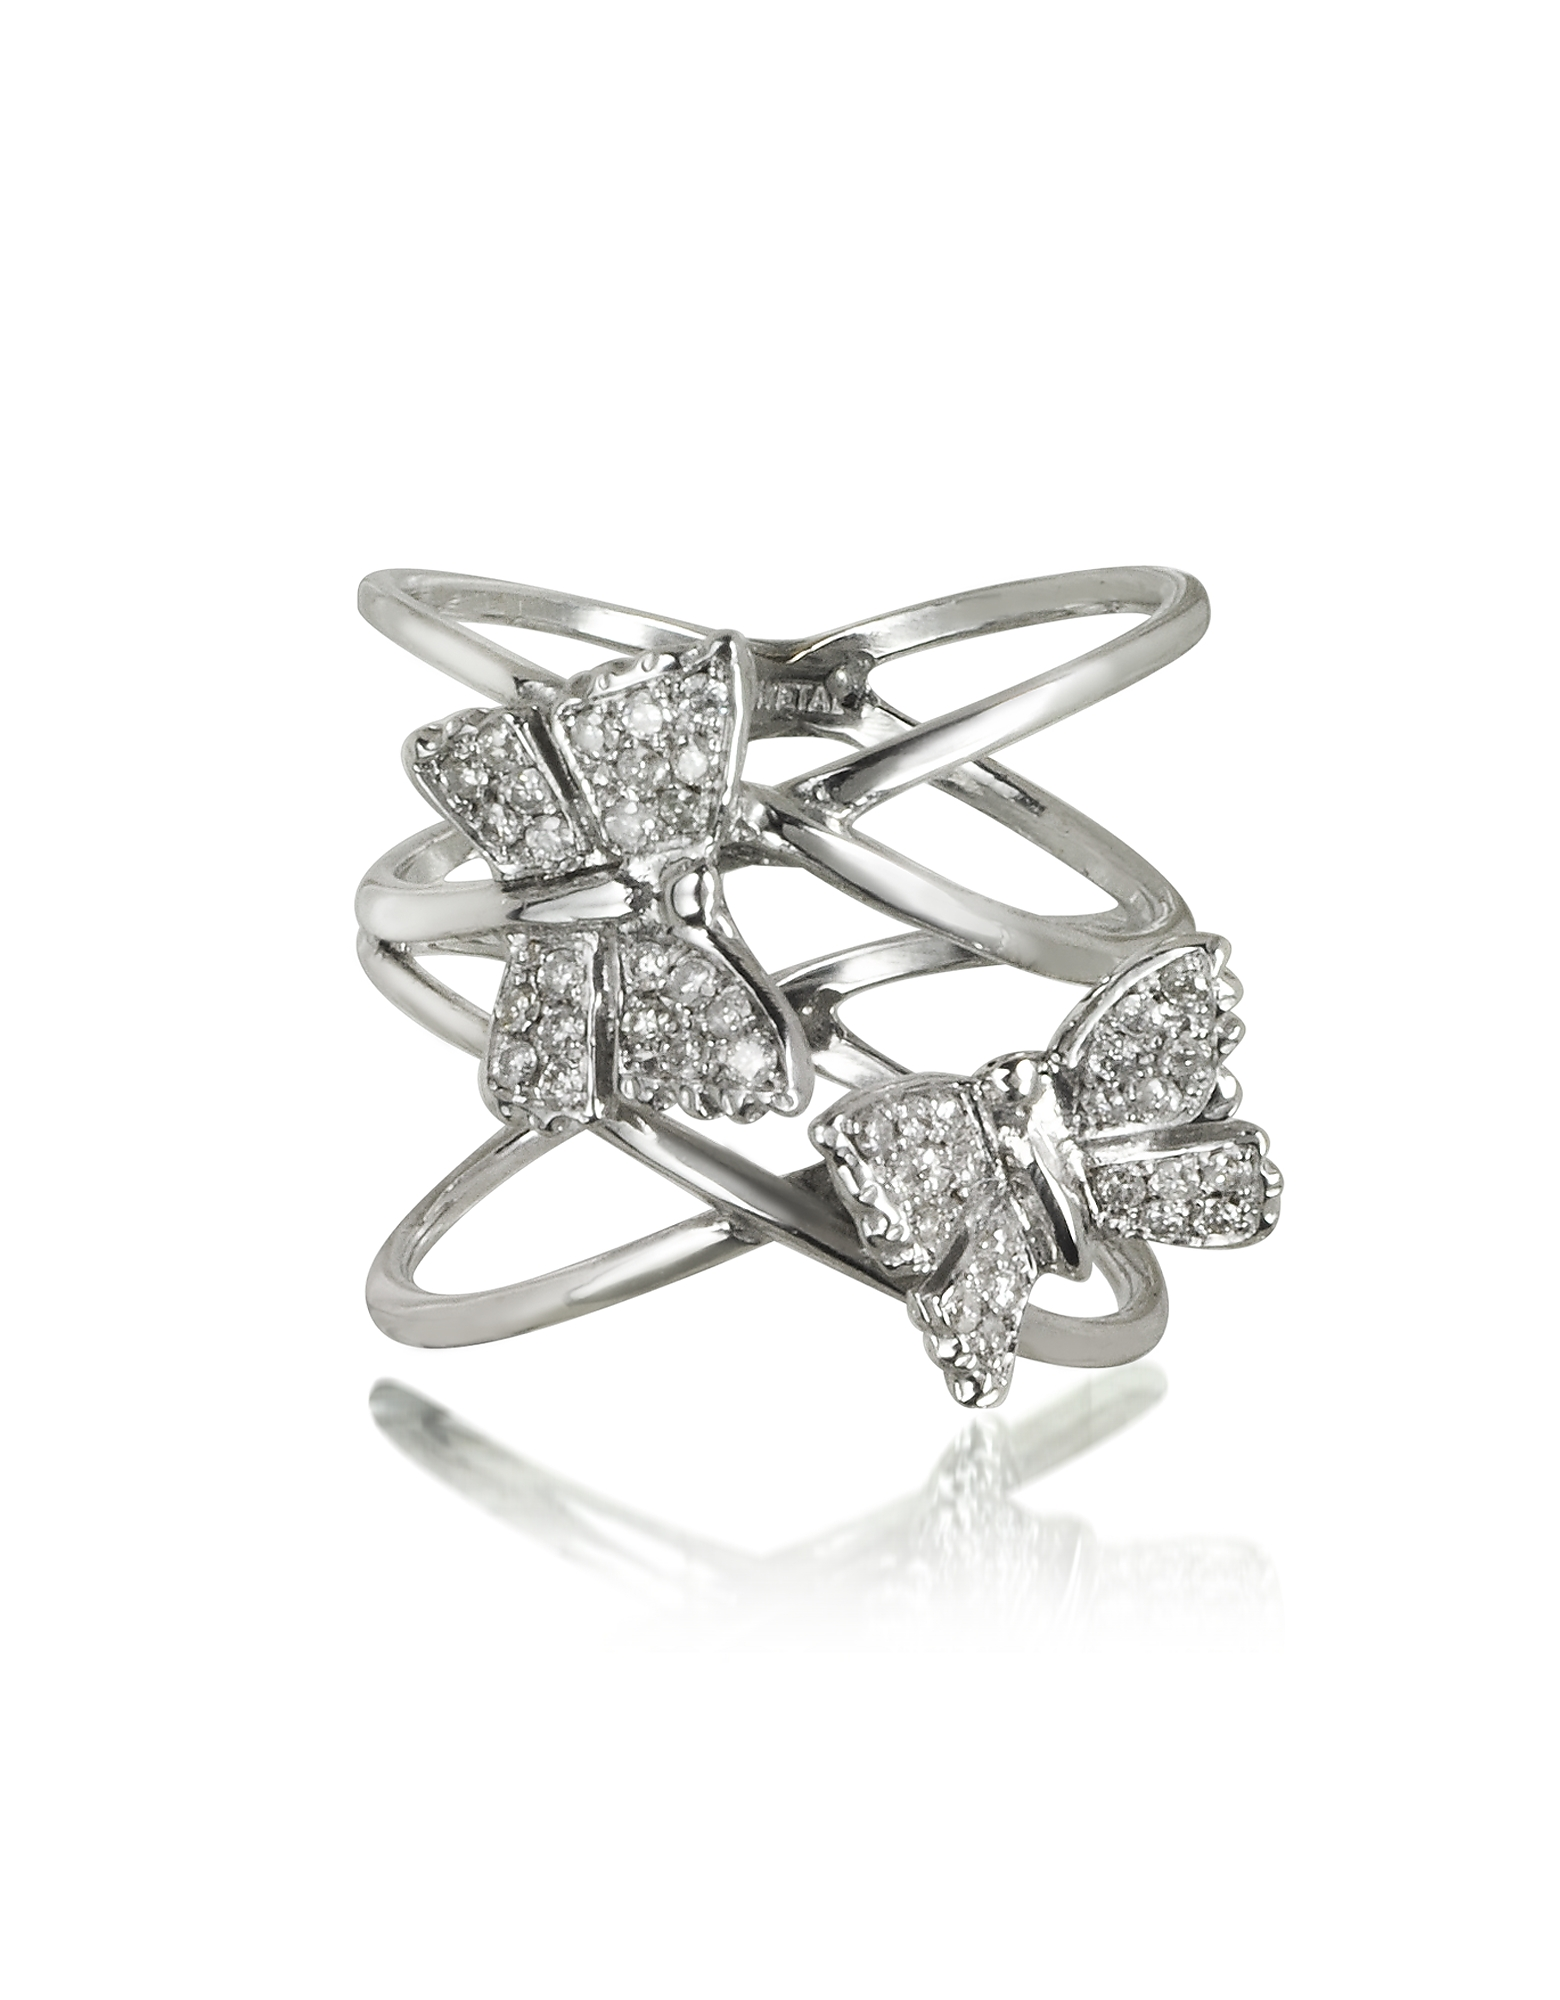 Bernard Delettrez Rings, Criss Cross 18K White Gold Ring w/Two Diamond Butterflies